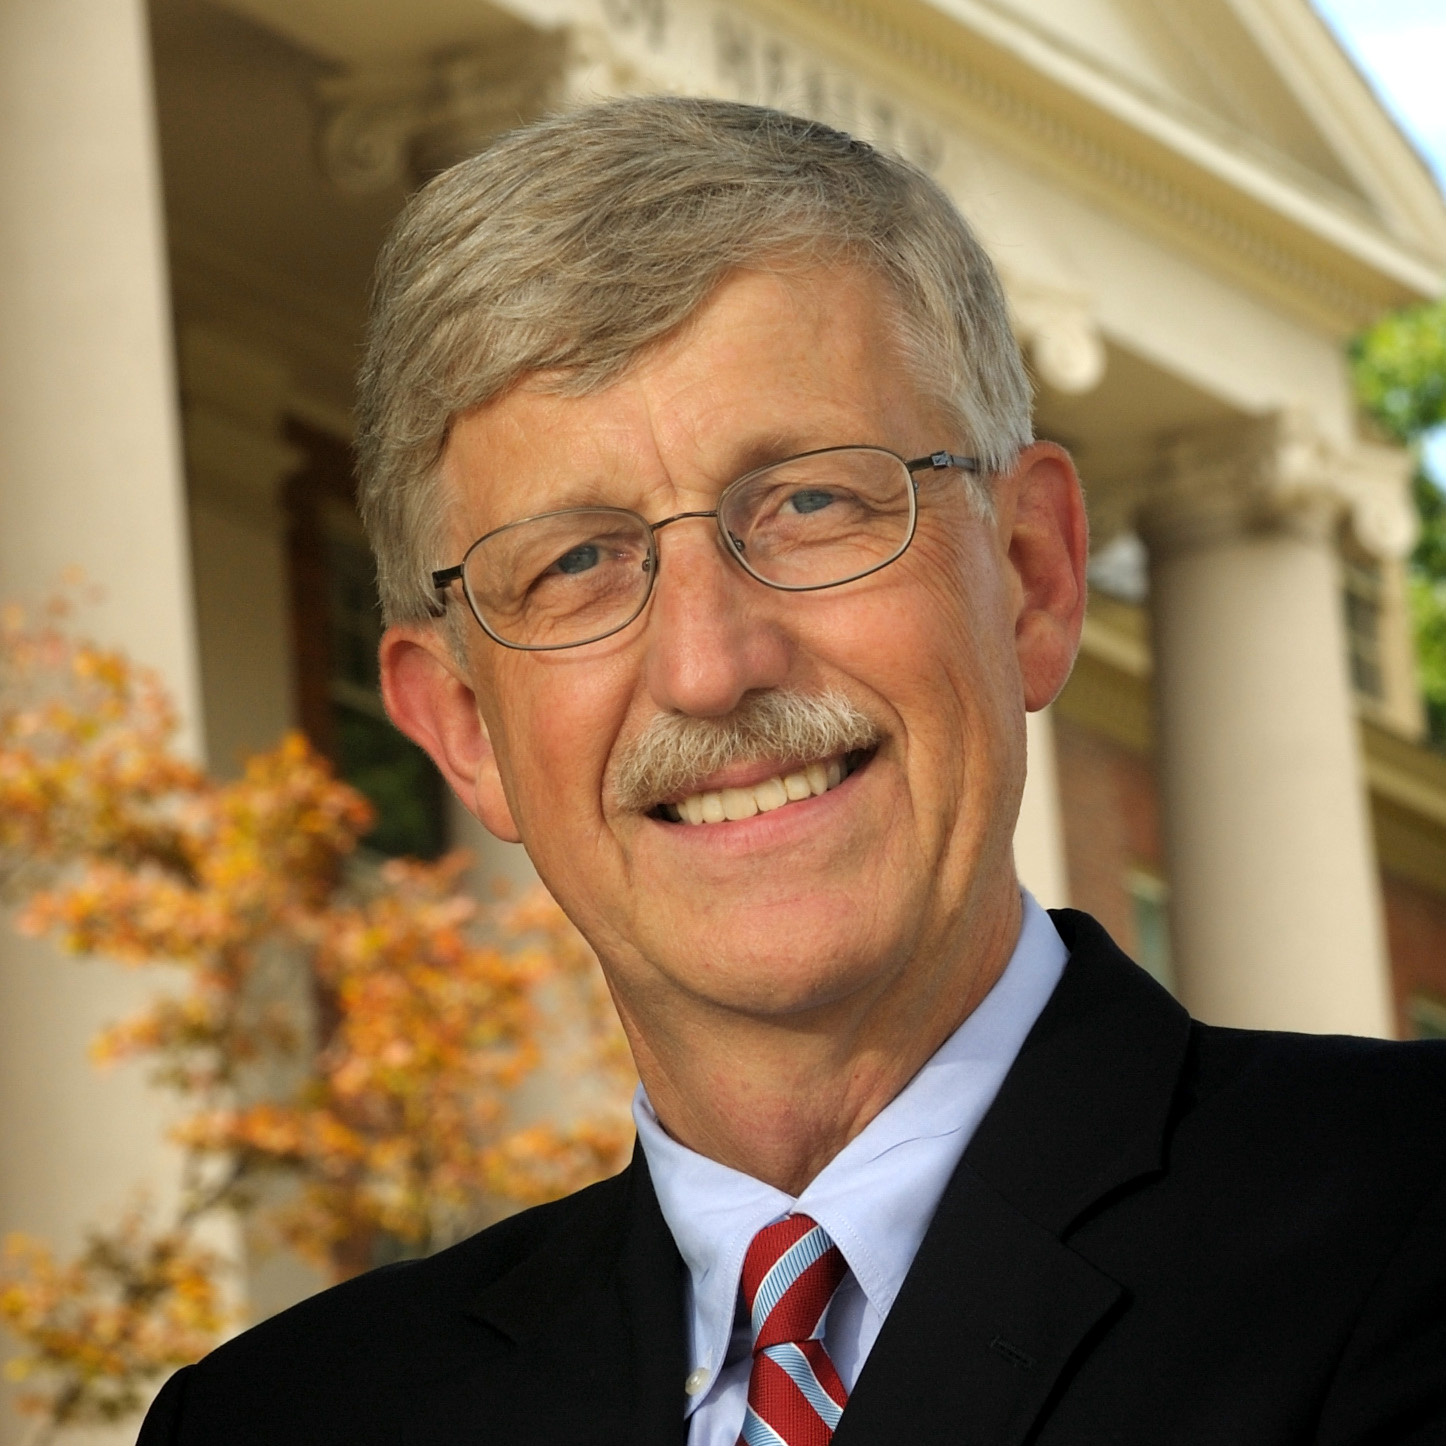 NIH Director Francis Collins to address SMU students during 102nd  Commencement May 20 - SMU